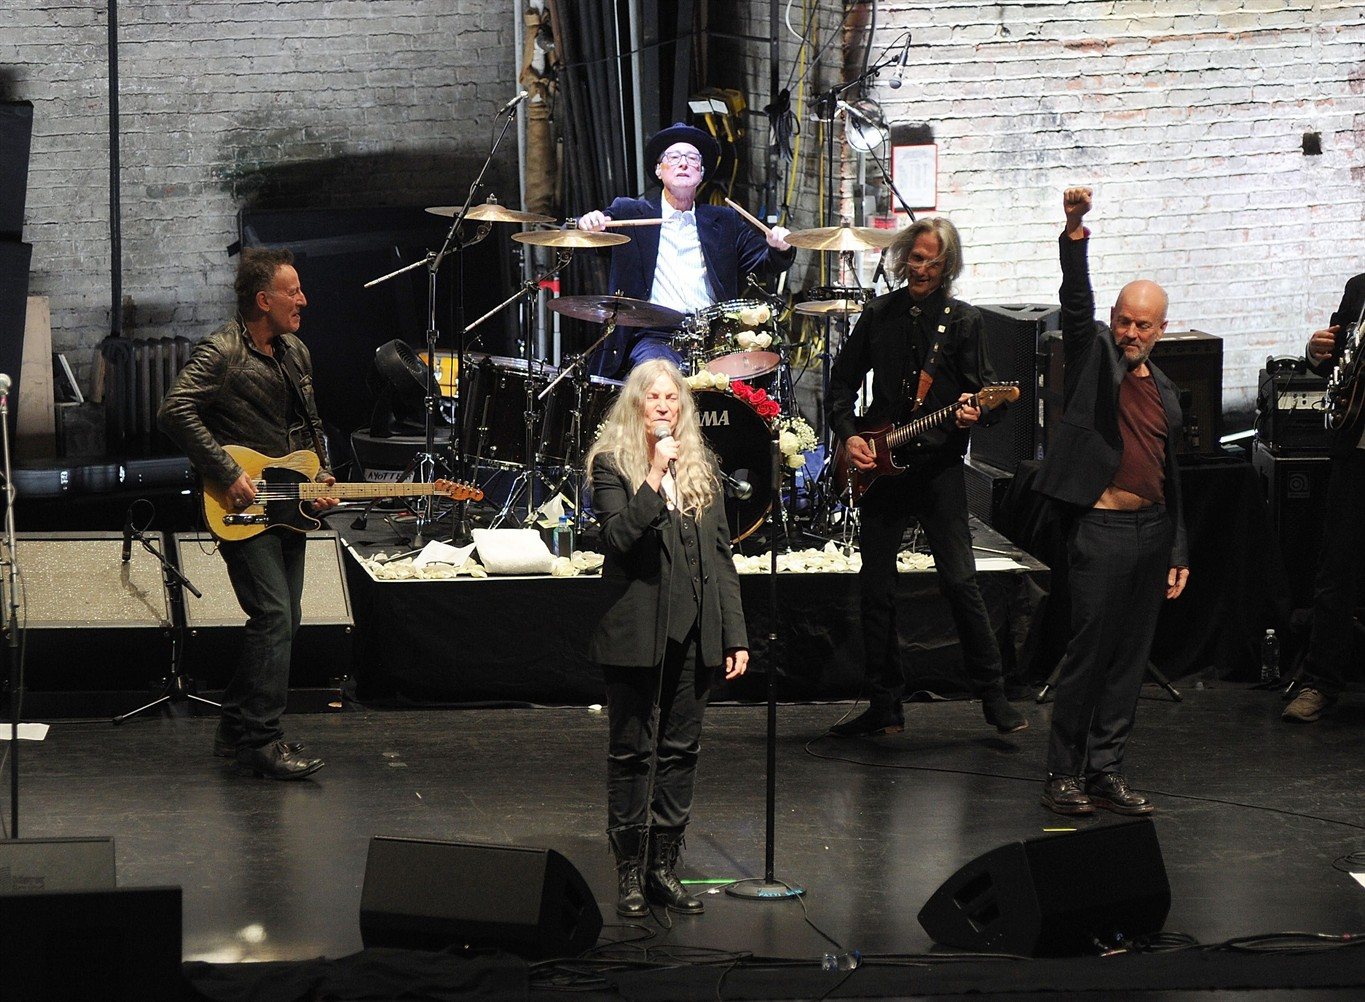 Watch Patti Smith, Bruce Springsteen and Michael Stipe all perform together